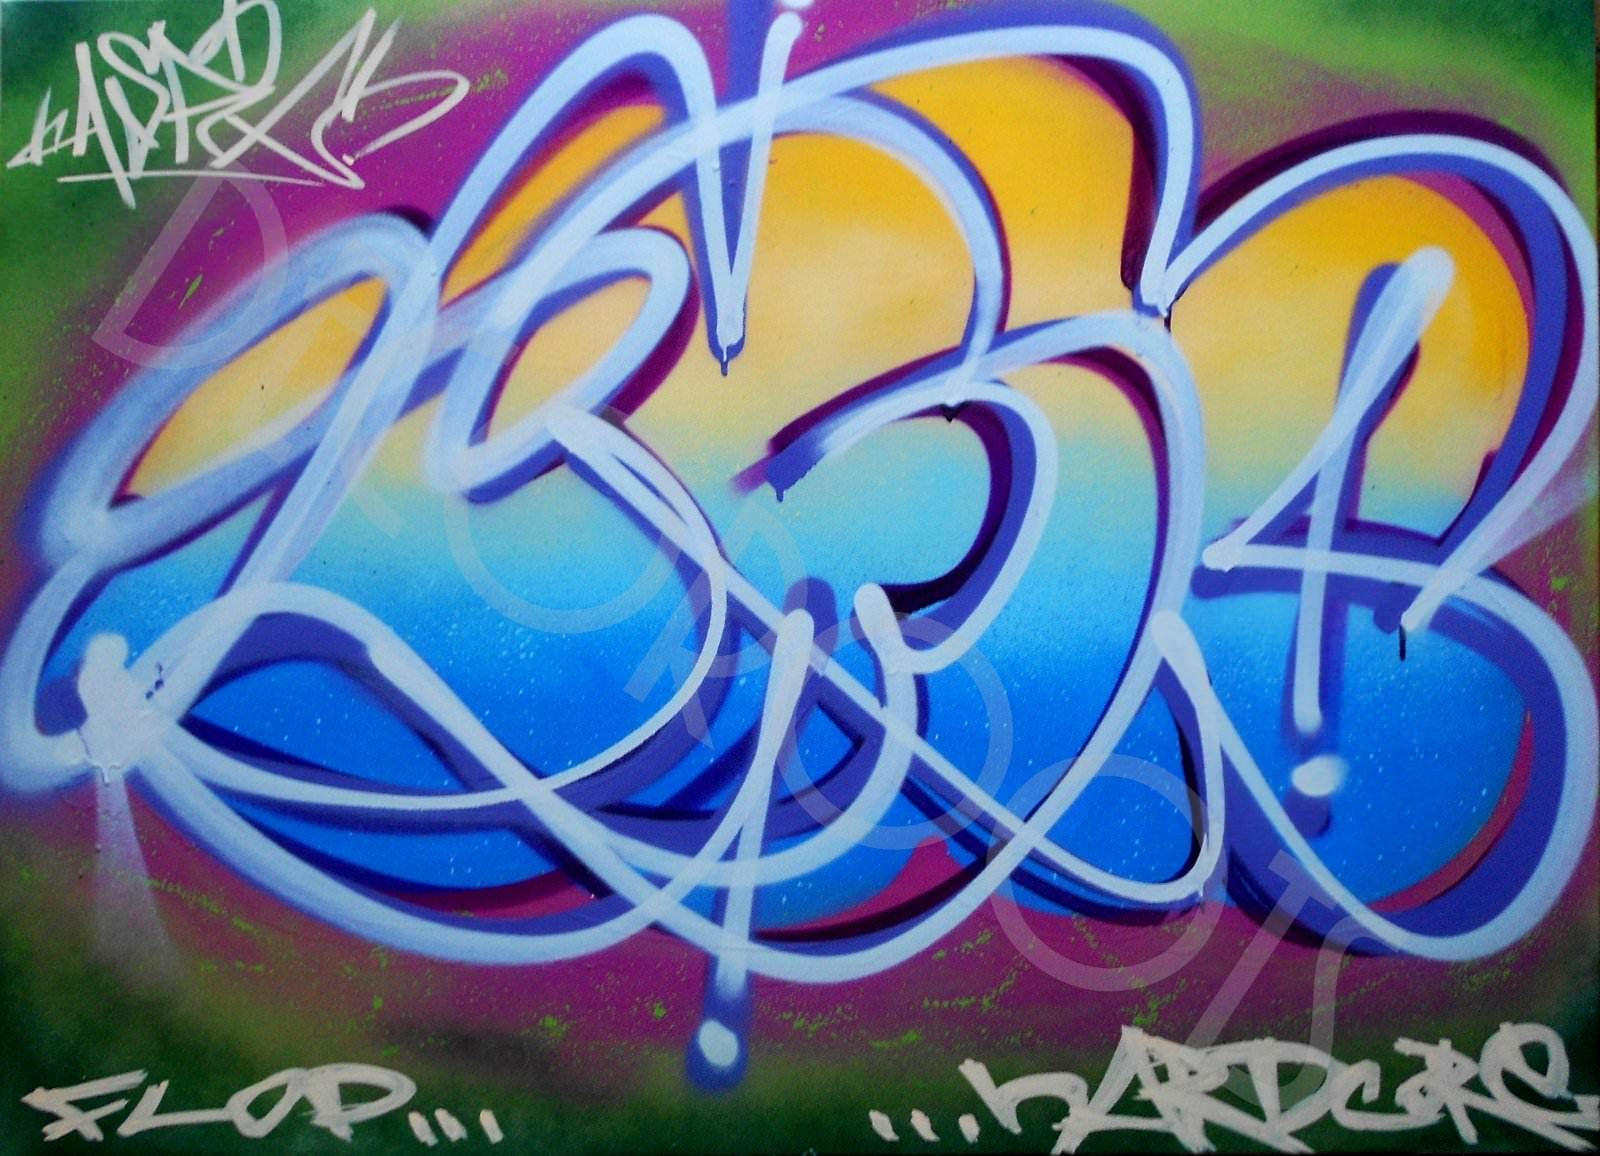 tableau design graffiti urbain new york